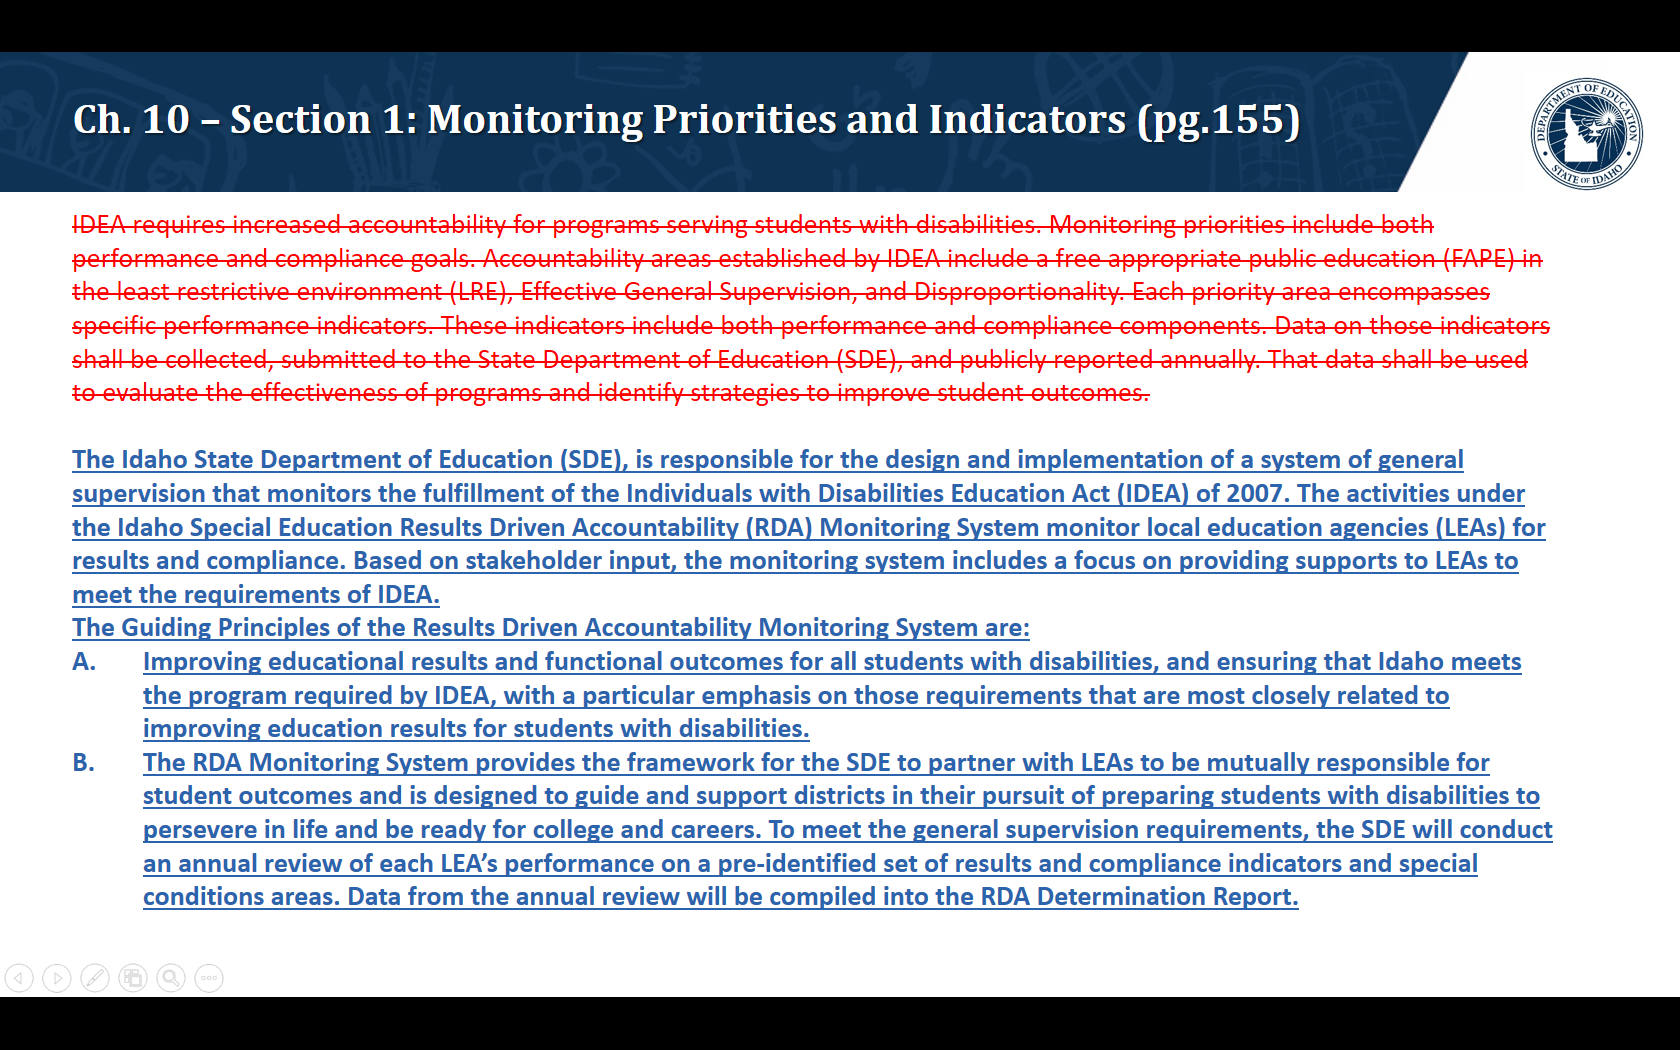 We are proposing to remove the following: IDEA requires increased accountability for programs serving students with disabilities. Monitoring priorities include both performance and compliance goals. Accountability areas established by IDEA include a free appropriate public education (FAPE) in the least restrictive environment (LRE), Effective General Supervision, and Disproportionality. Each priority area encompasses specific performance indicators. These indicators include both performance and compliance components. Data on those indicators shall be collected, submitted to the State Department of Education (SDE), and publicly reported annually. That data shall be used to evaluate the effectiveness of programs and identify strategies to improve student outcomes. We are proposing to add the following: The Idaho State Department of Education (SDE), is responsible for the design and implementation of a system of general supervision that monitors the fulfillment of the Individuals with Disabilities Education Act (IDEA) of 2007. The activities under the Idaho Special Education Results Driven Accountability (RDA) Monitoring System monitor local education agencies (LEAs) for results and compliance. Based on stakeholder input, the monitoring system includes a focus on providing supports to LEAs to meet the requirements of IDEA. The Guiding Principles of the Results Driven Accountability Monitoring System are: Improving educational results and functional outcomes for all students with disabilities, and ensuring that Idaho meets the program required by IDEA, with a particular emphasis on those requirements that are most closely related to improving education results for students with disabilities.  The RDA Monitoring System provides the framework for the SDE to partner with LEAs to be mutually responsible for student outcomes and is designed to guide and support districts in their pursuit of preparing students with disabilities to persevere in life and be ready for college an